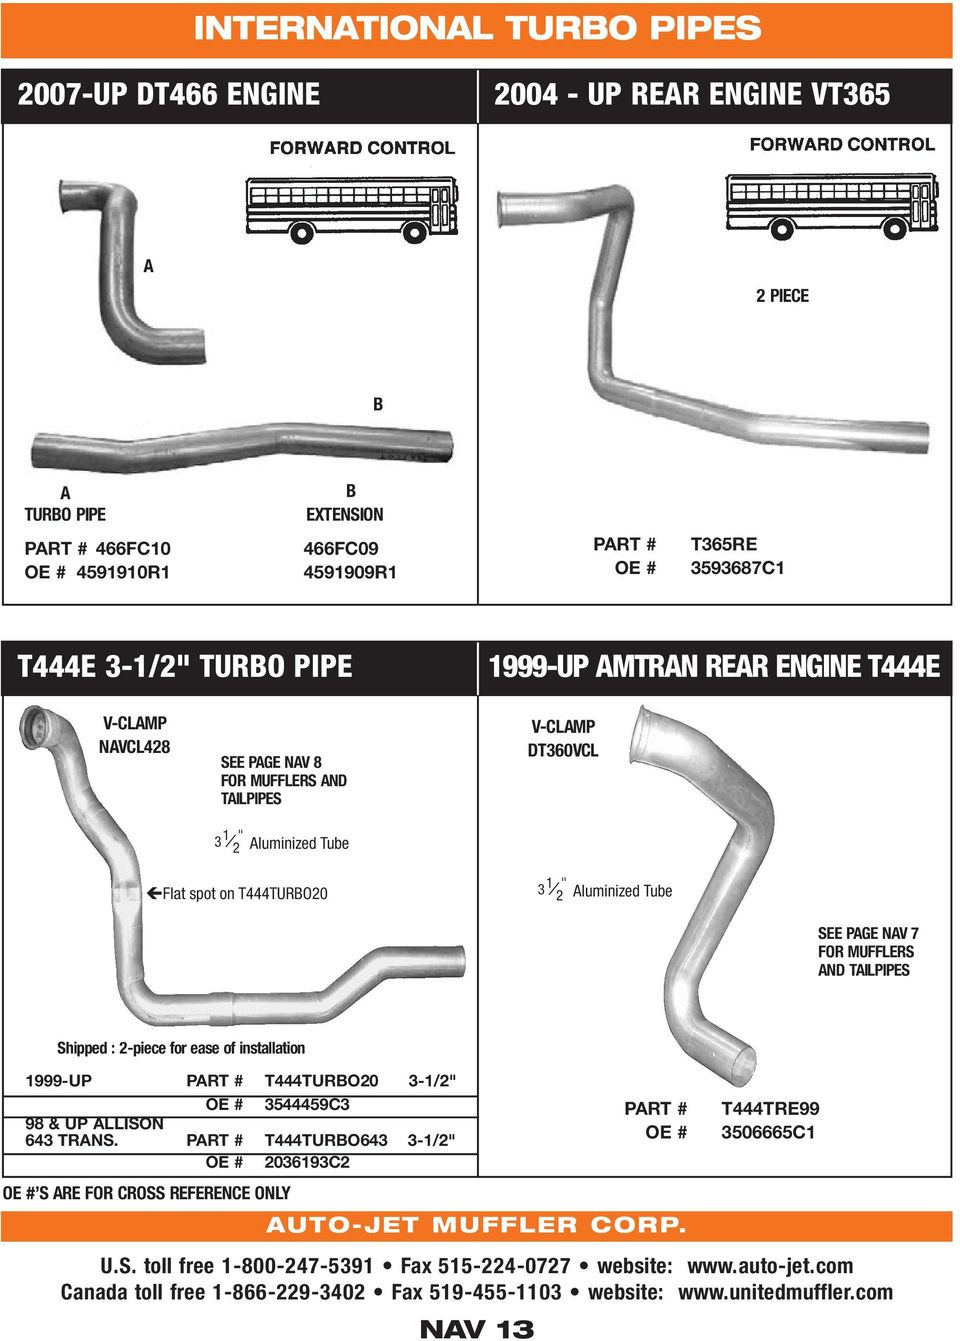 school bus exhaust systems volume 10 pdf v clamp dt360vcl flat spot on t444turbo20 3 1 2 aluminized tube see page